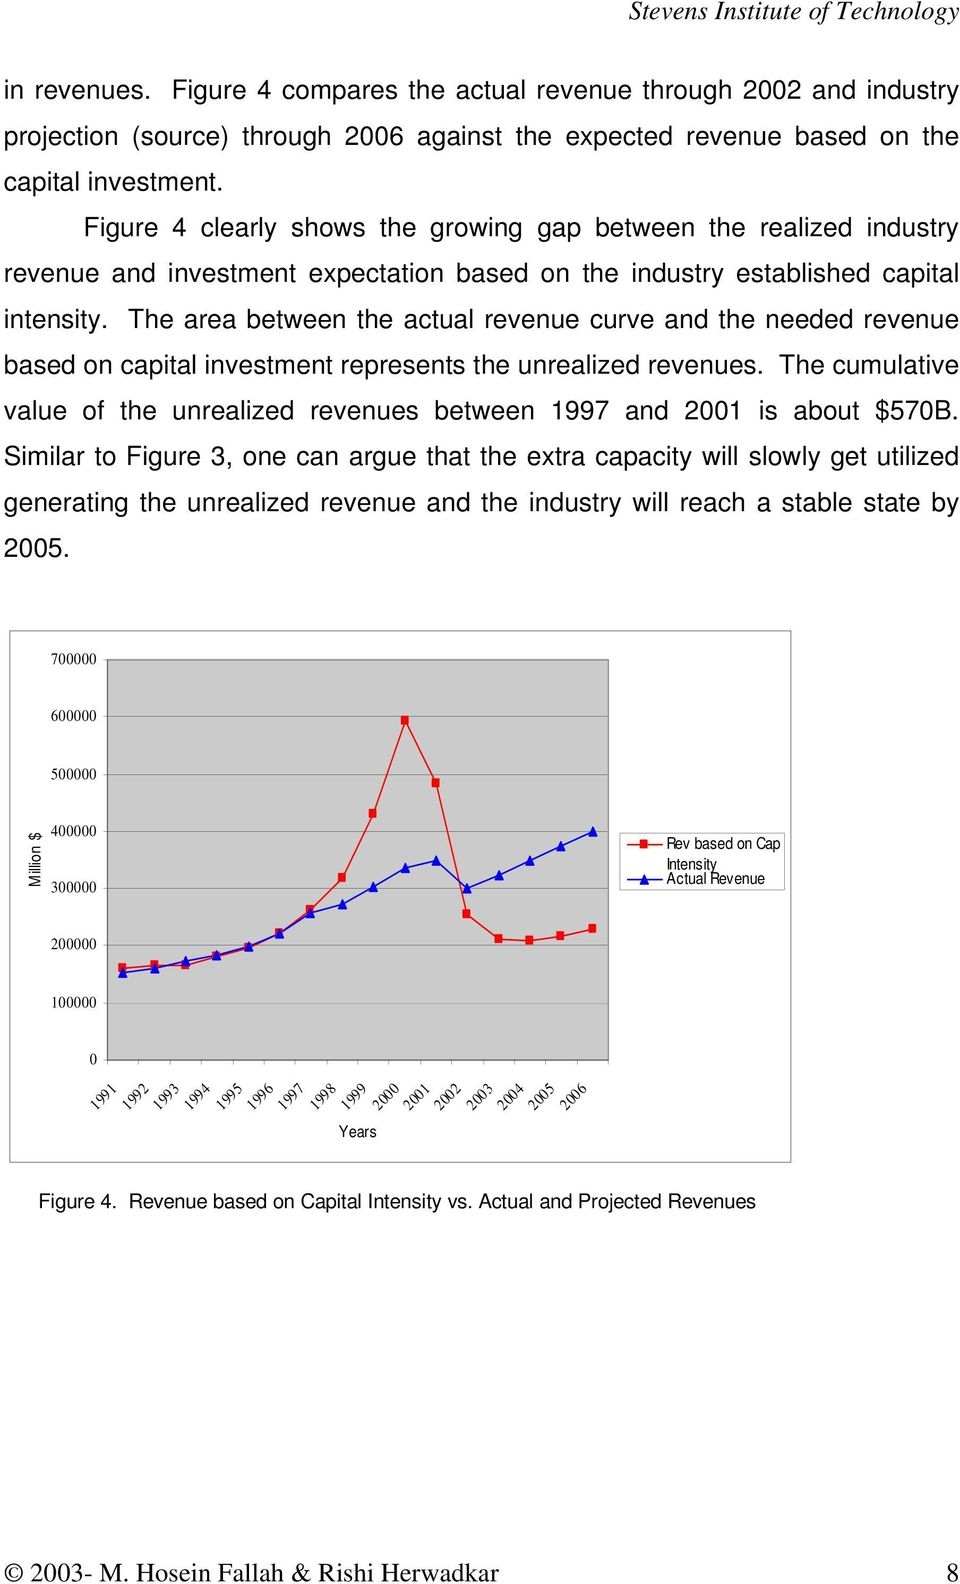 The area between the actual revenue curve and the needed revenue based on capital investment represents the unrealized revenues.